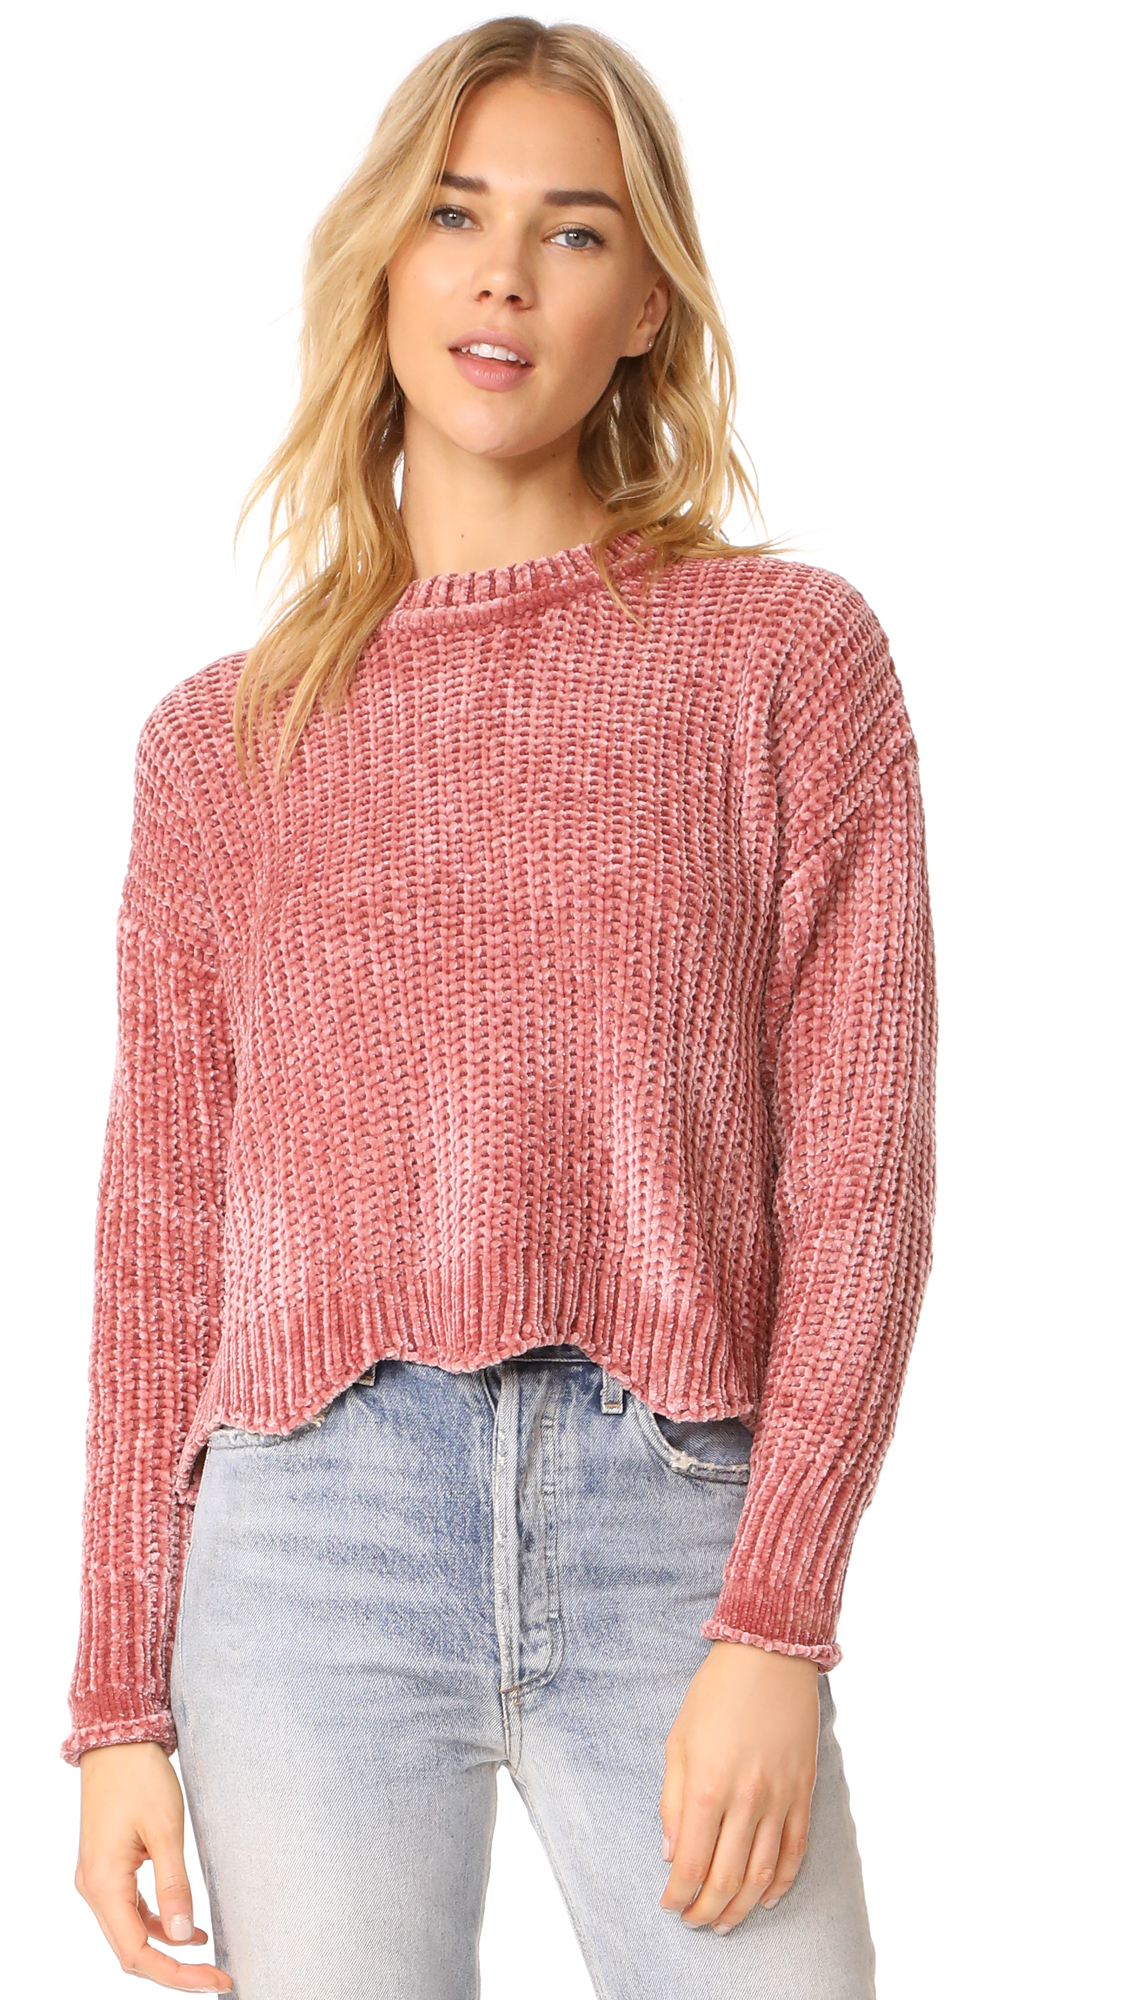 ENGLISH FACTORY Scallop Hem Knit Sweater - Nude Pink